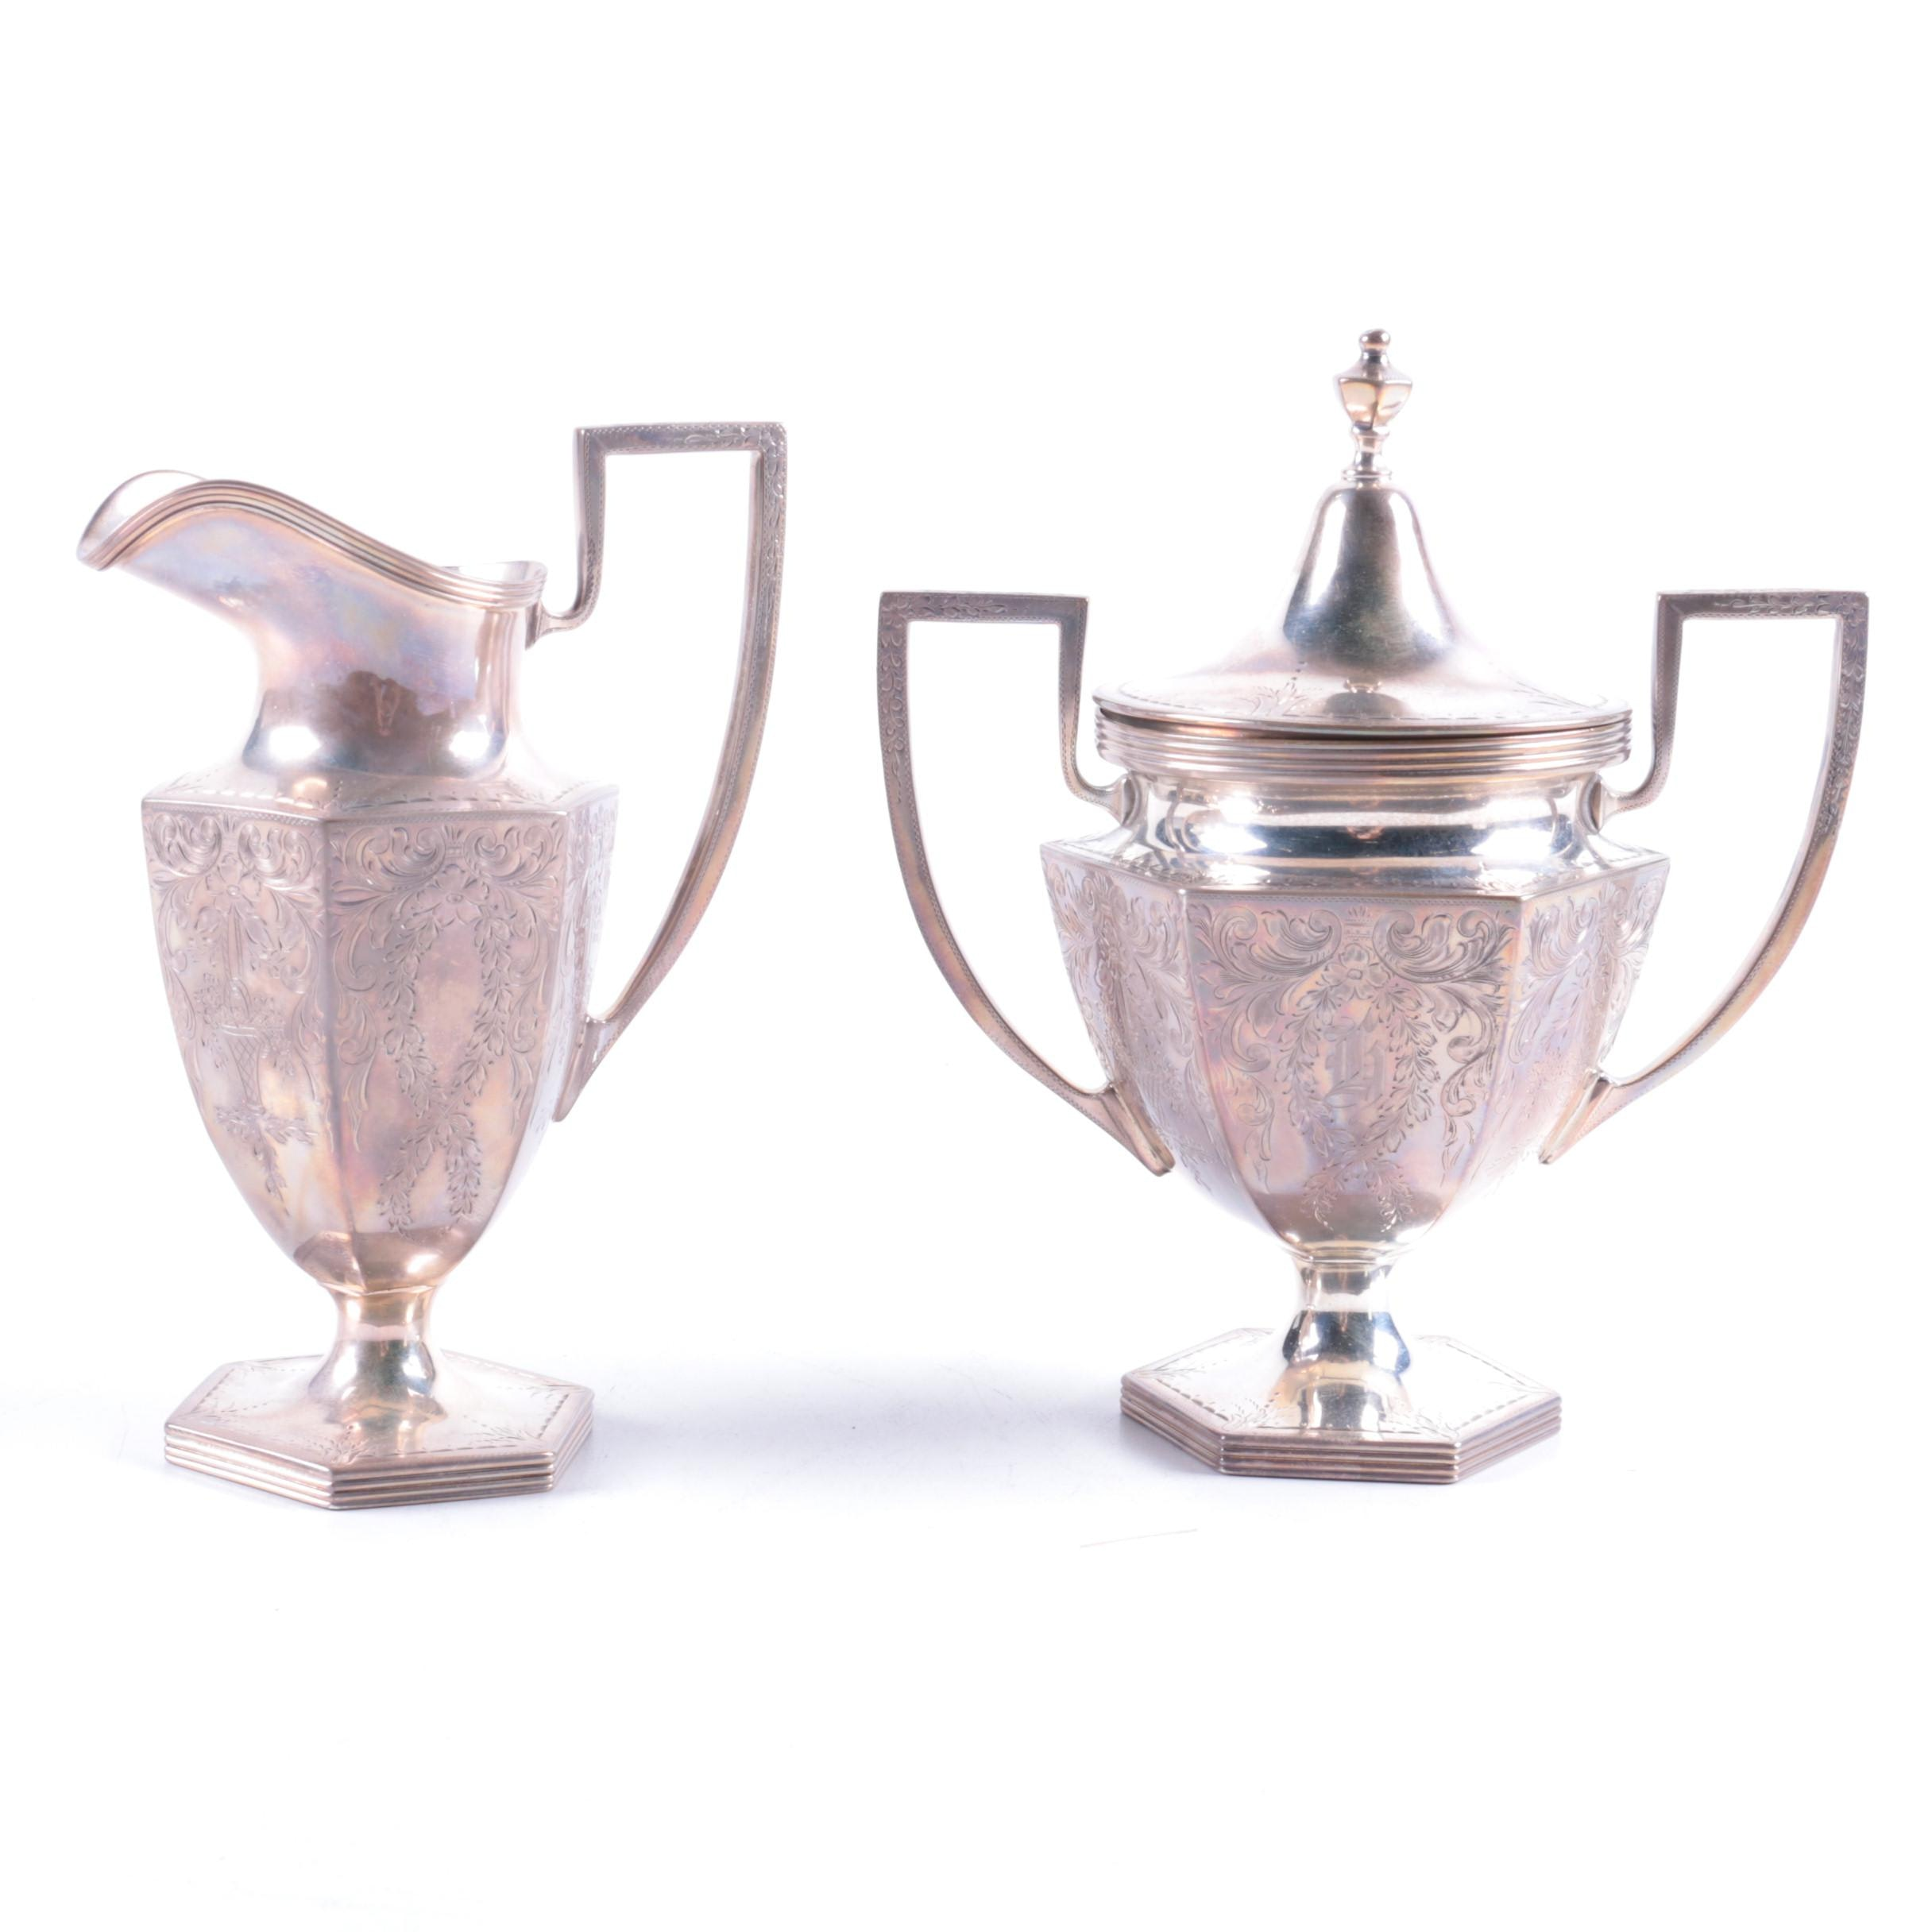 "The Stieff Co. ""Puritan-Engraved"" Sterling Silver Creamer and Sugar Bowl Set"